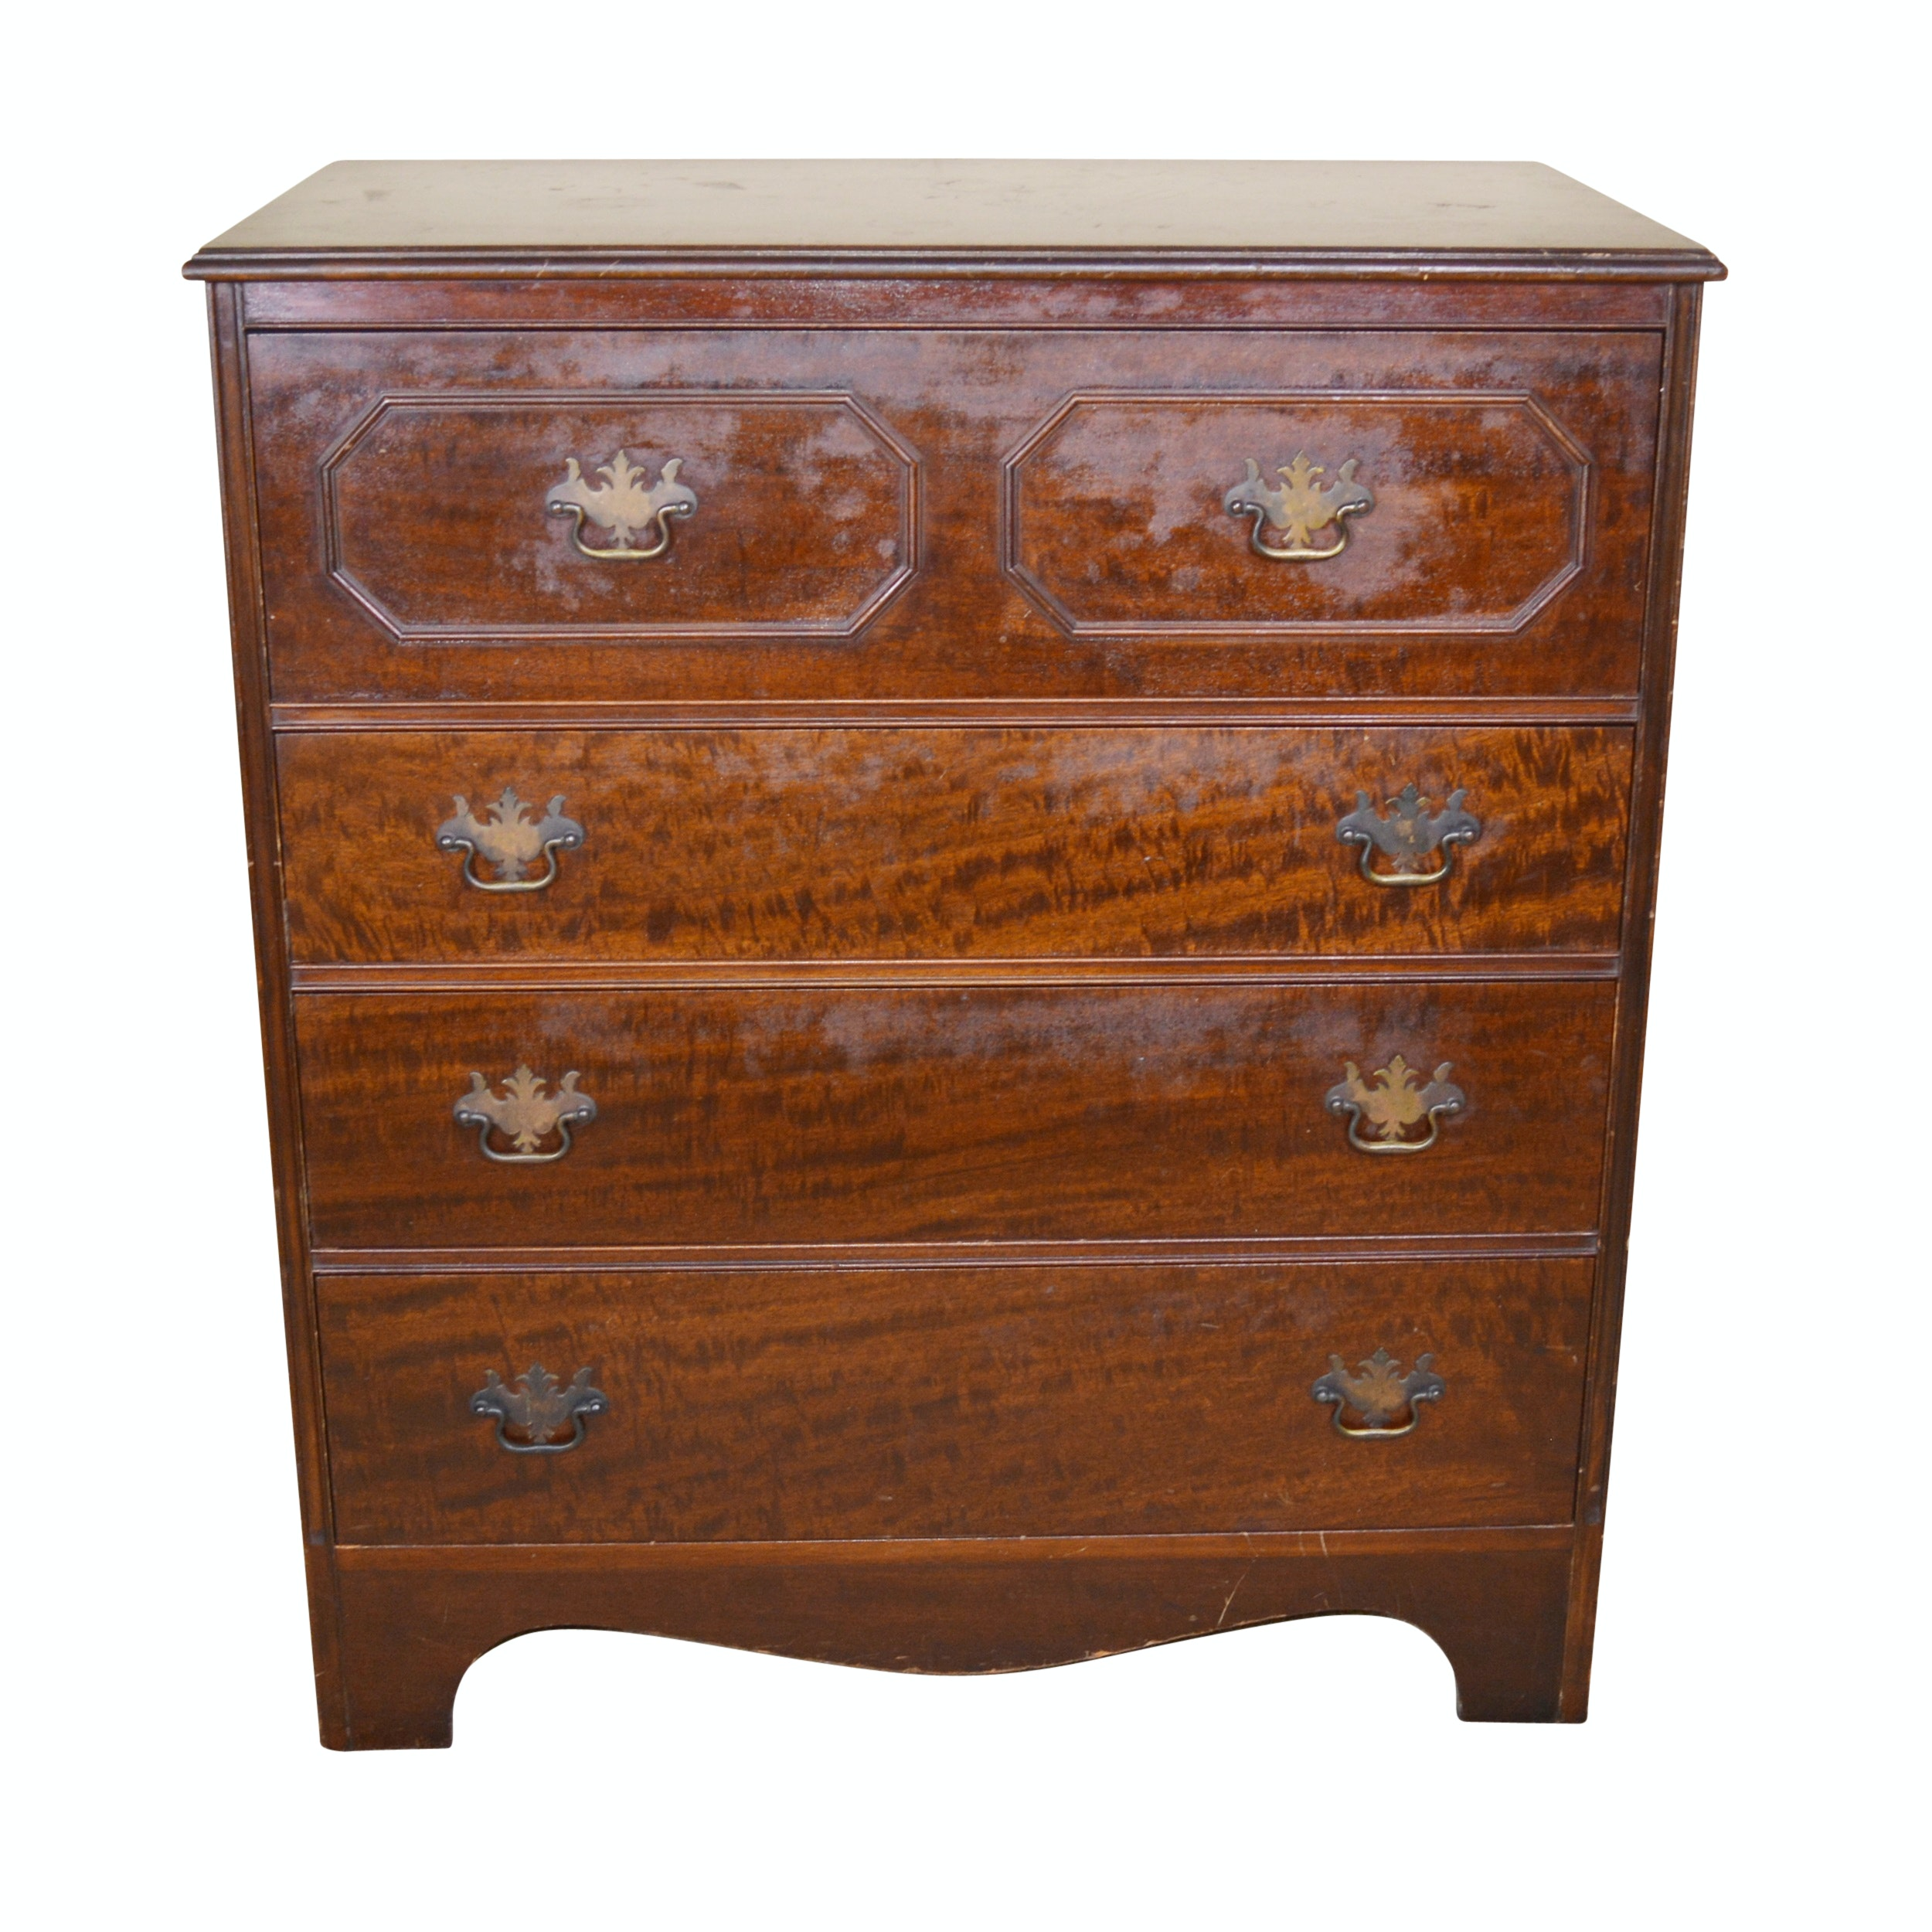 Superb Chest Of Drawers By The Robert Mitchell Furniture Co.